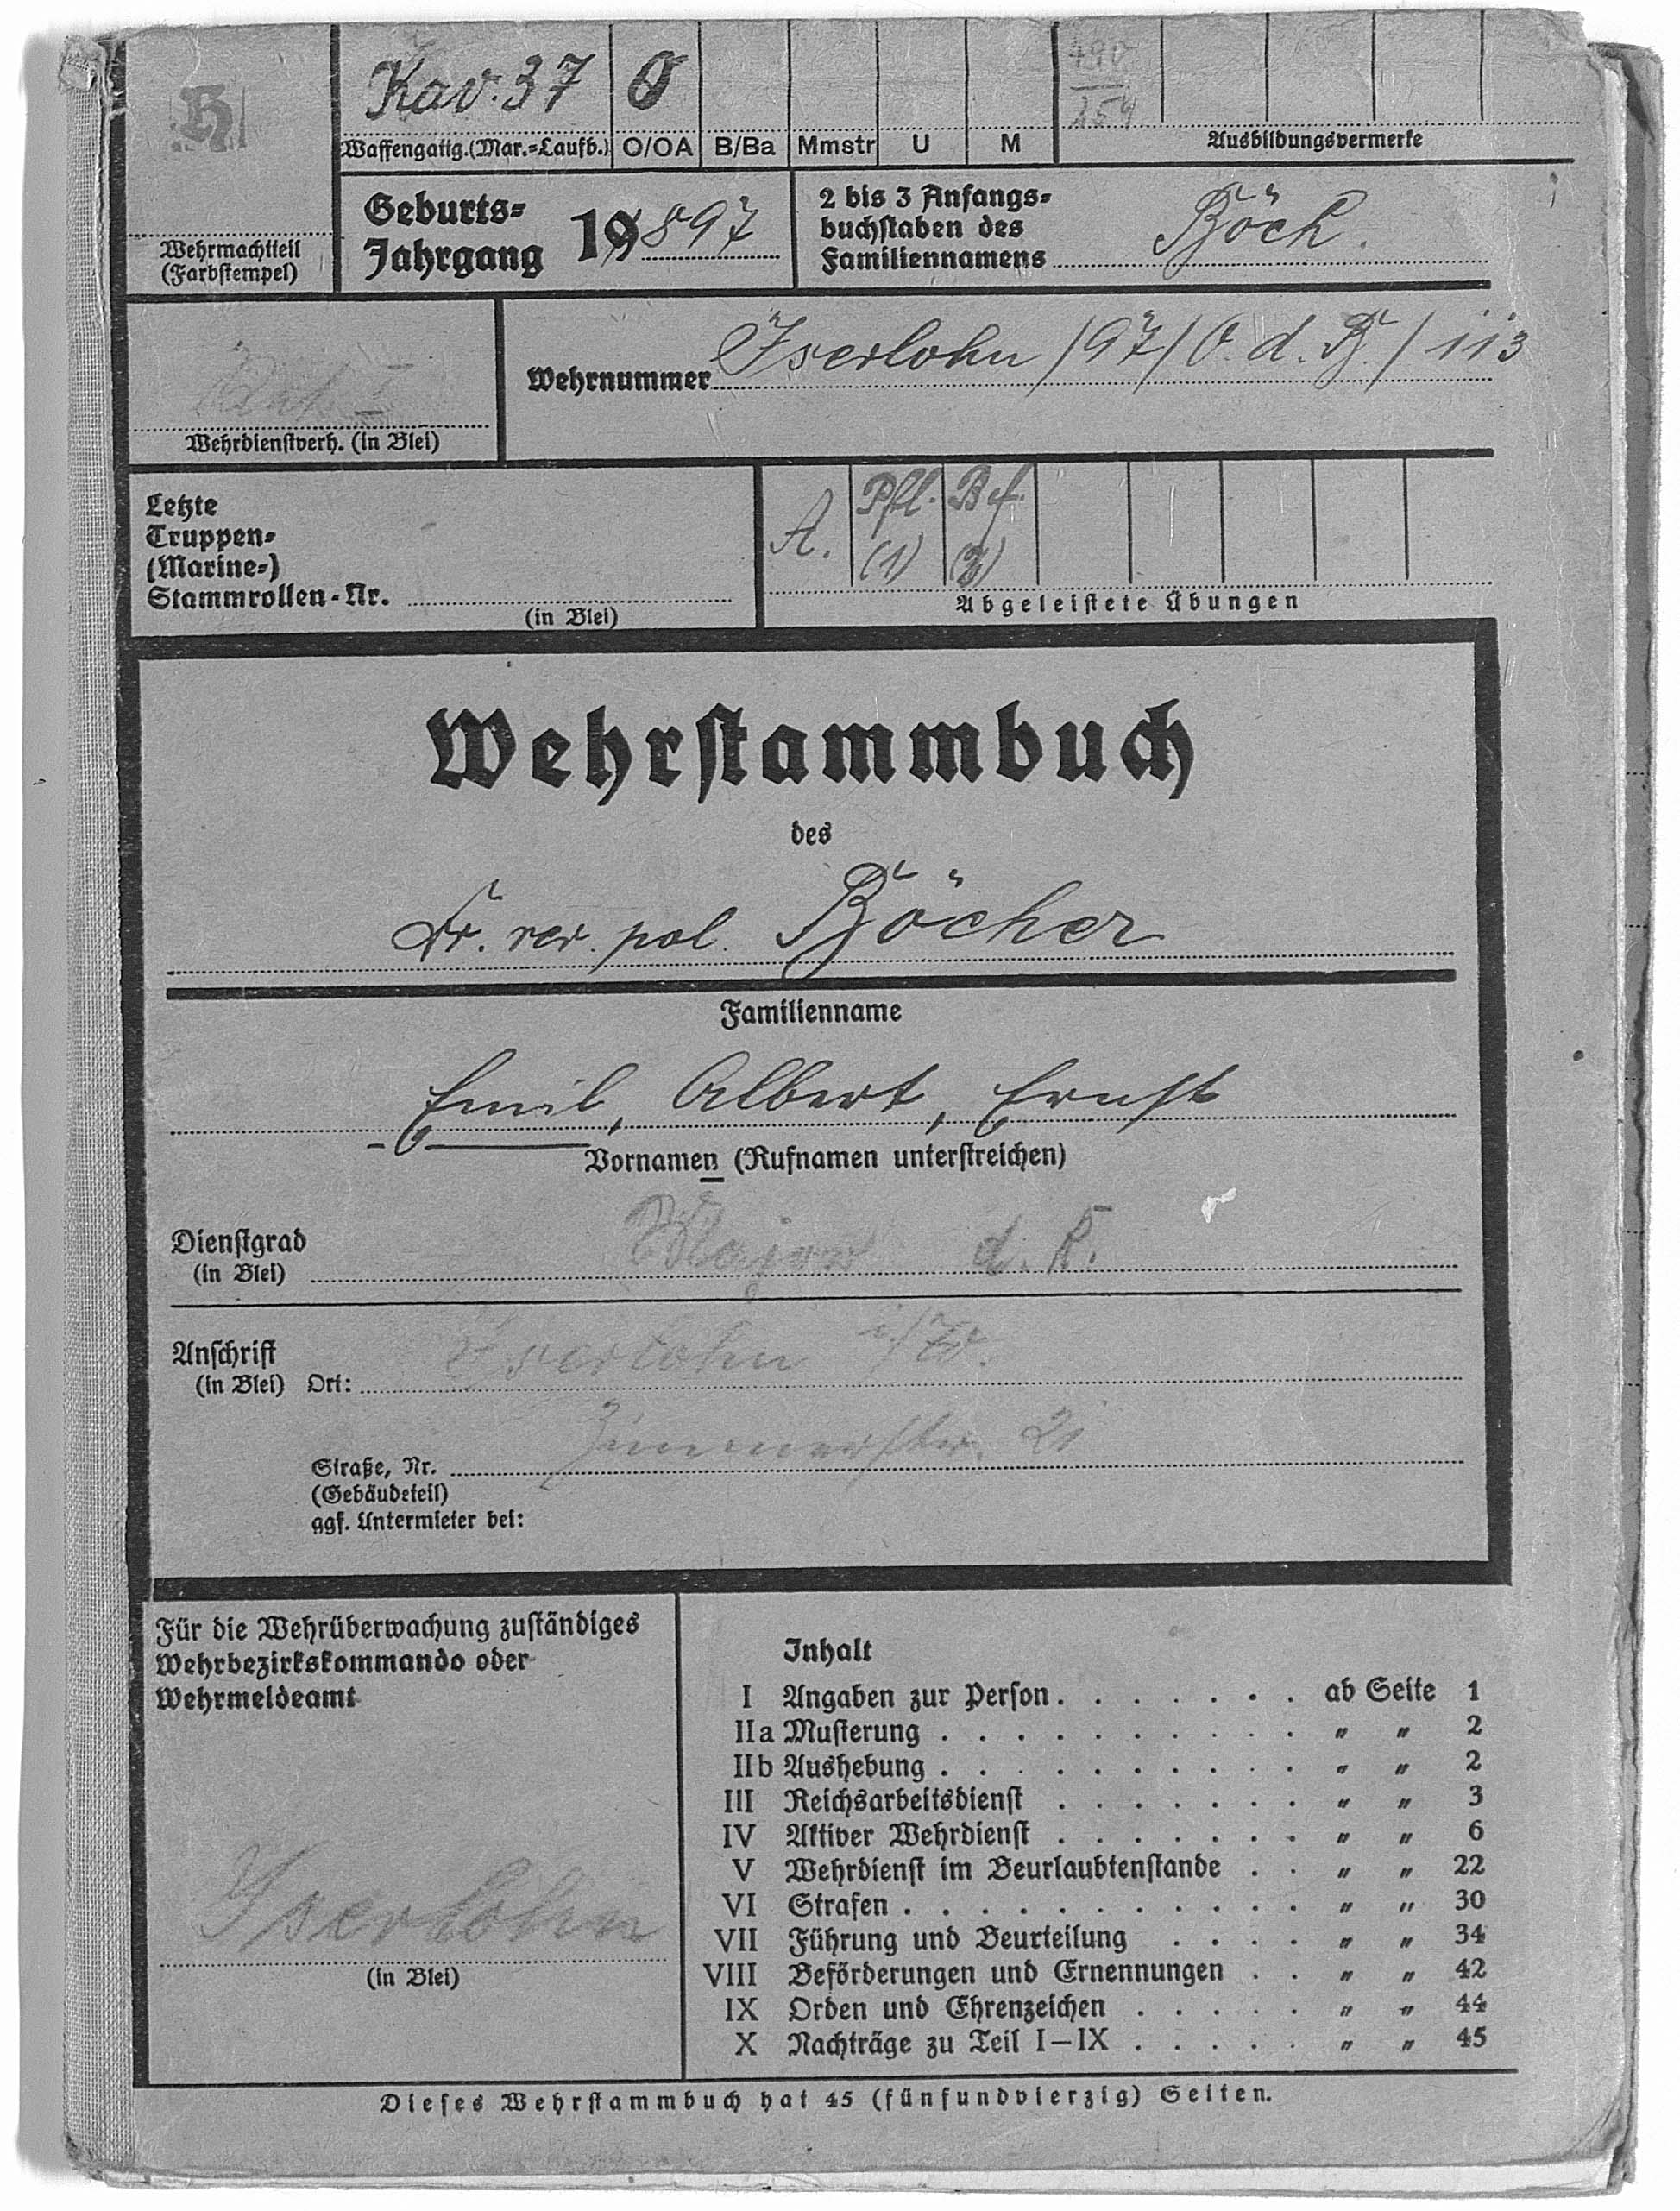 Pay book and service record